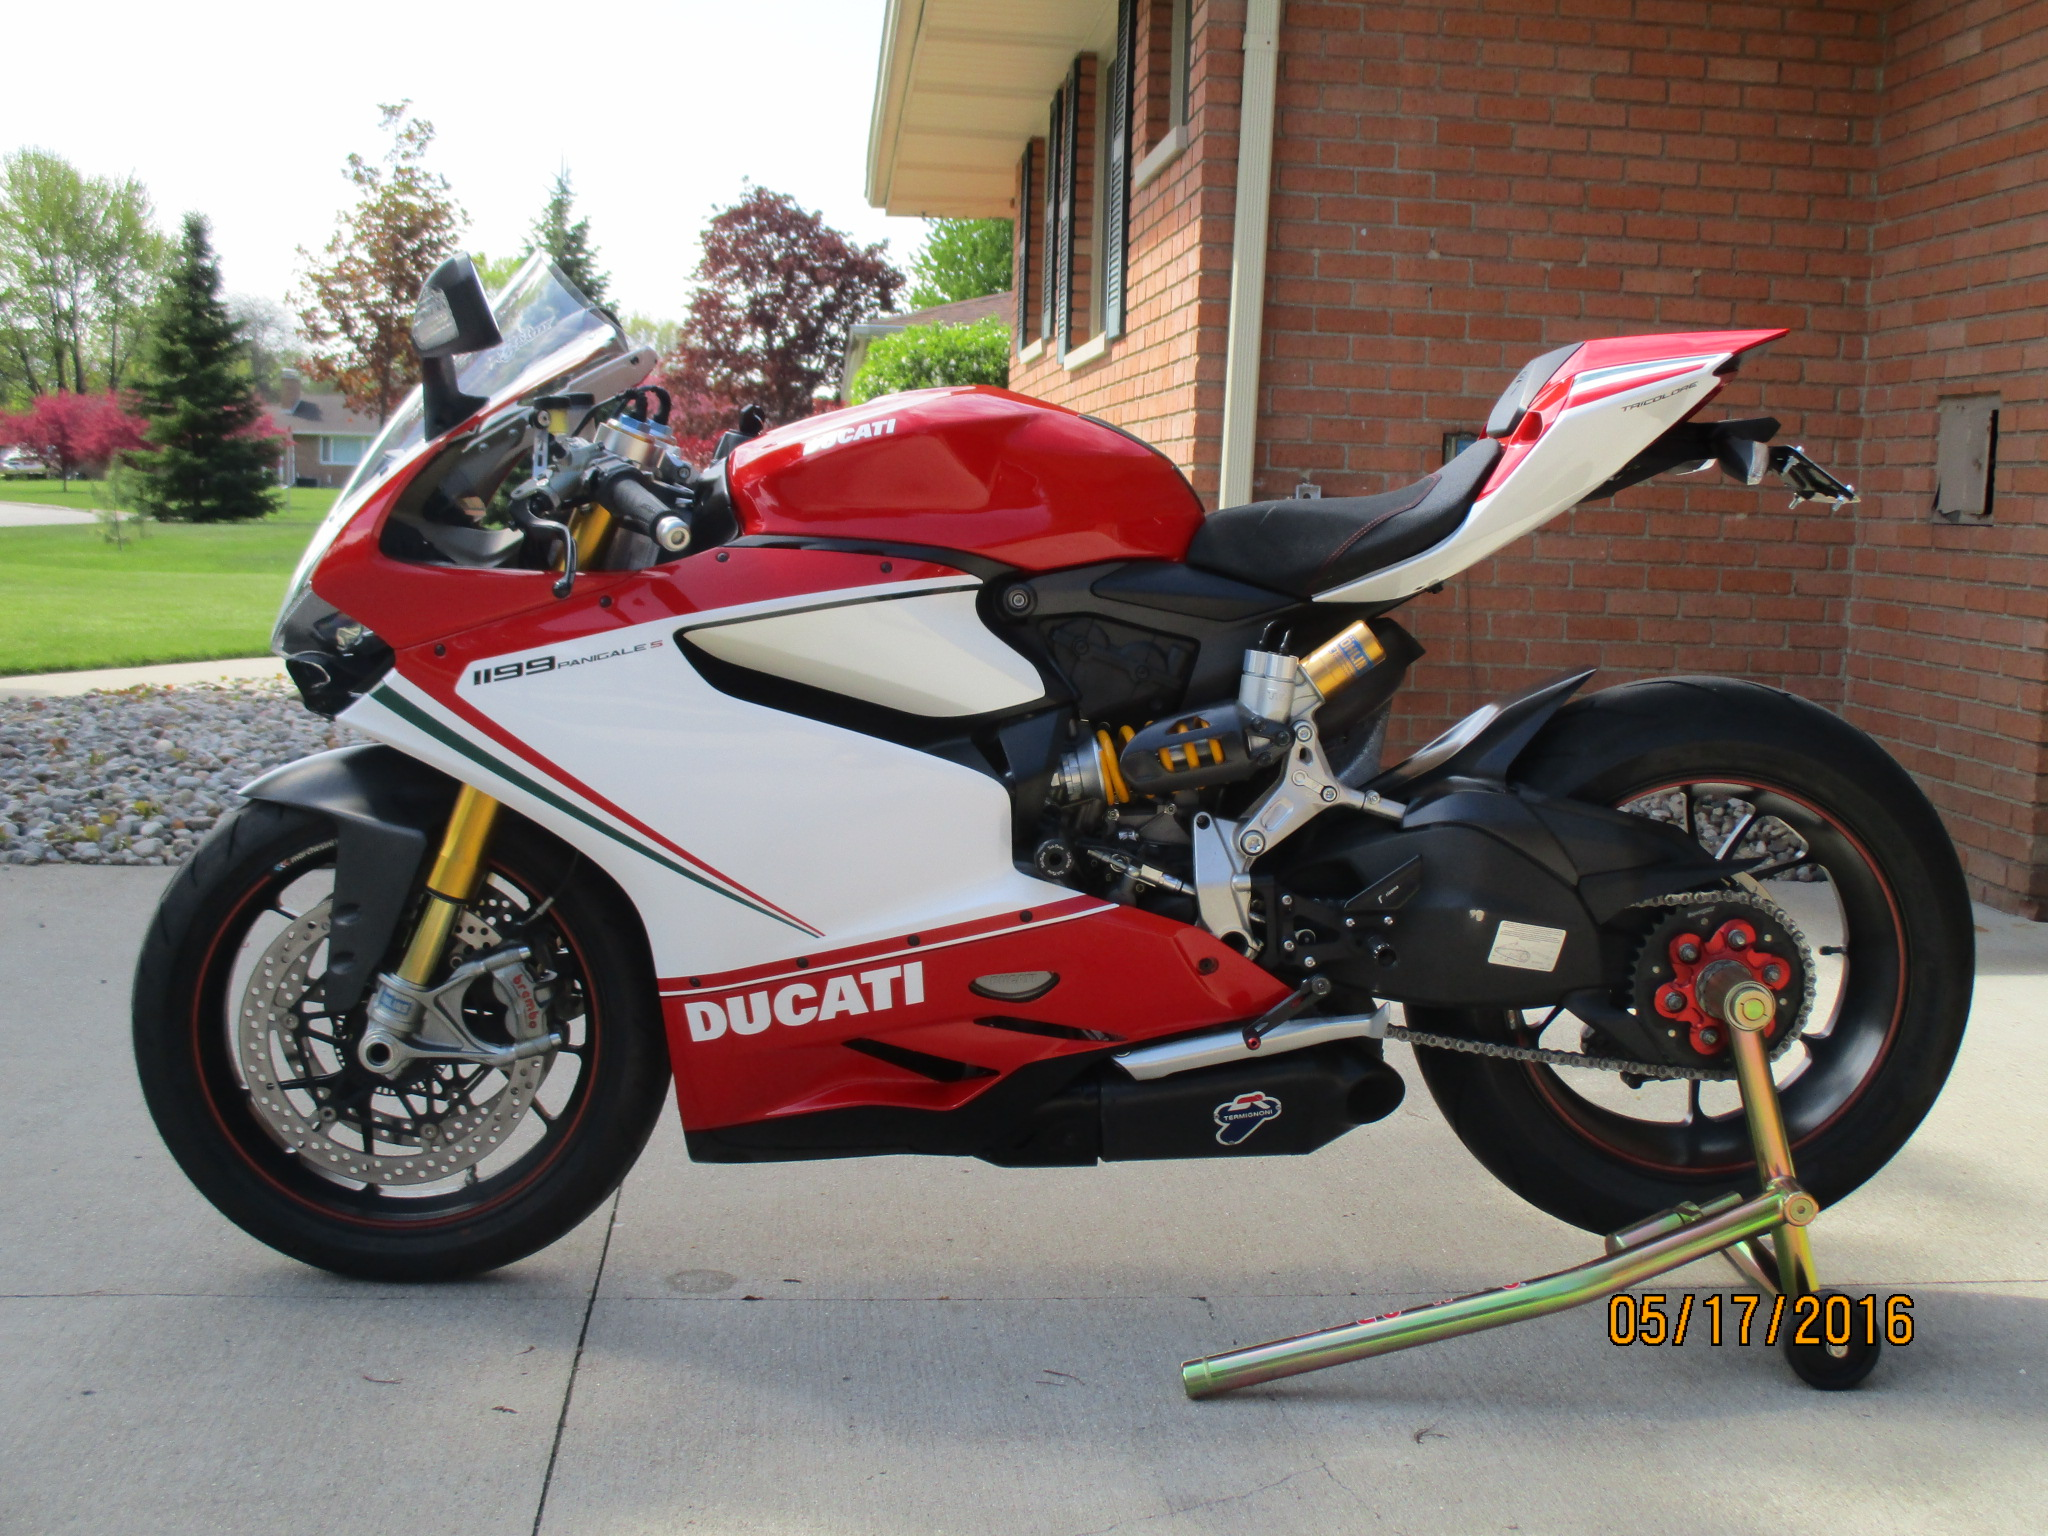 Ducati  For Sale Craigslist